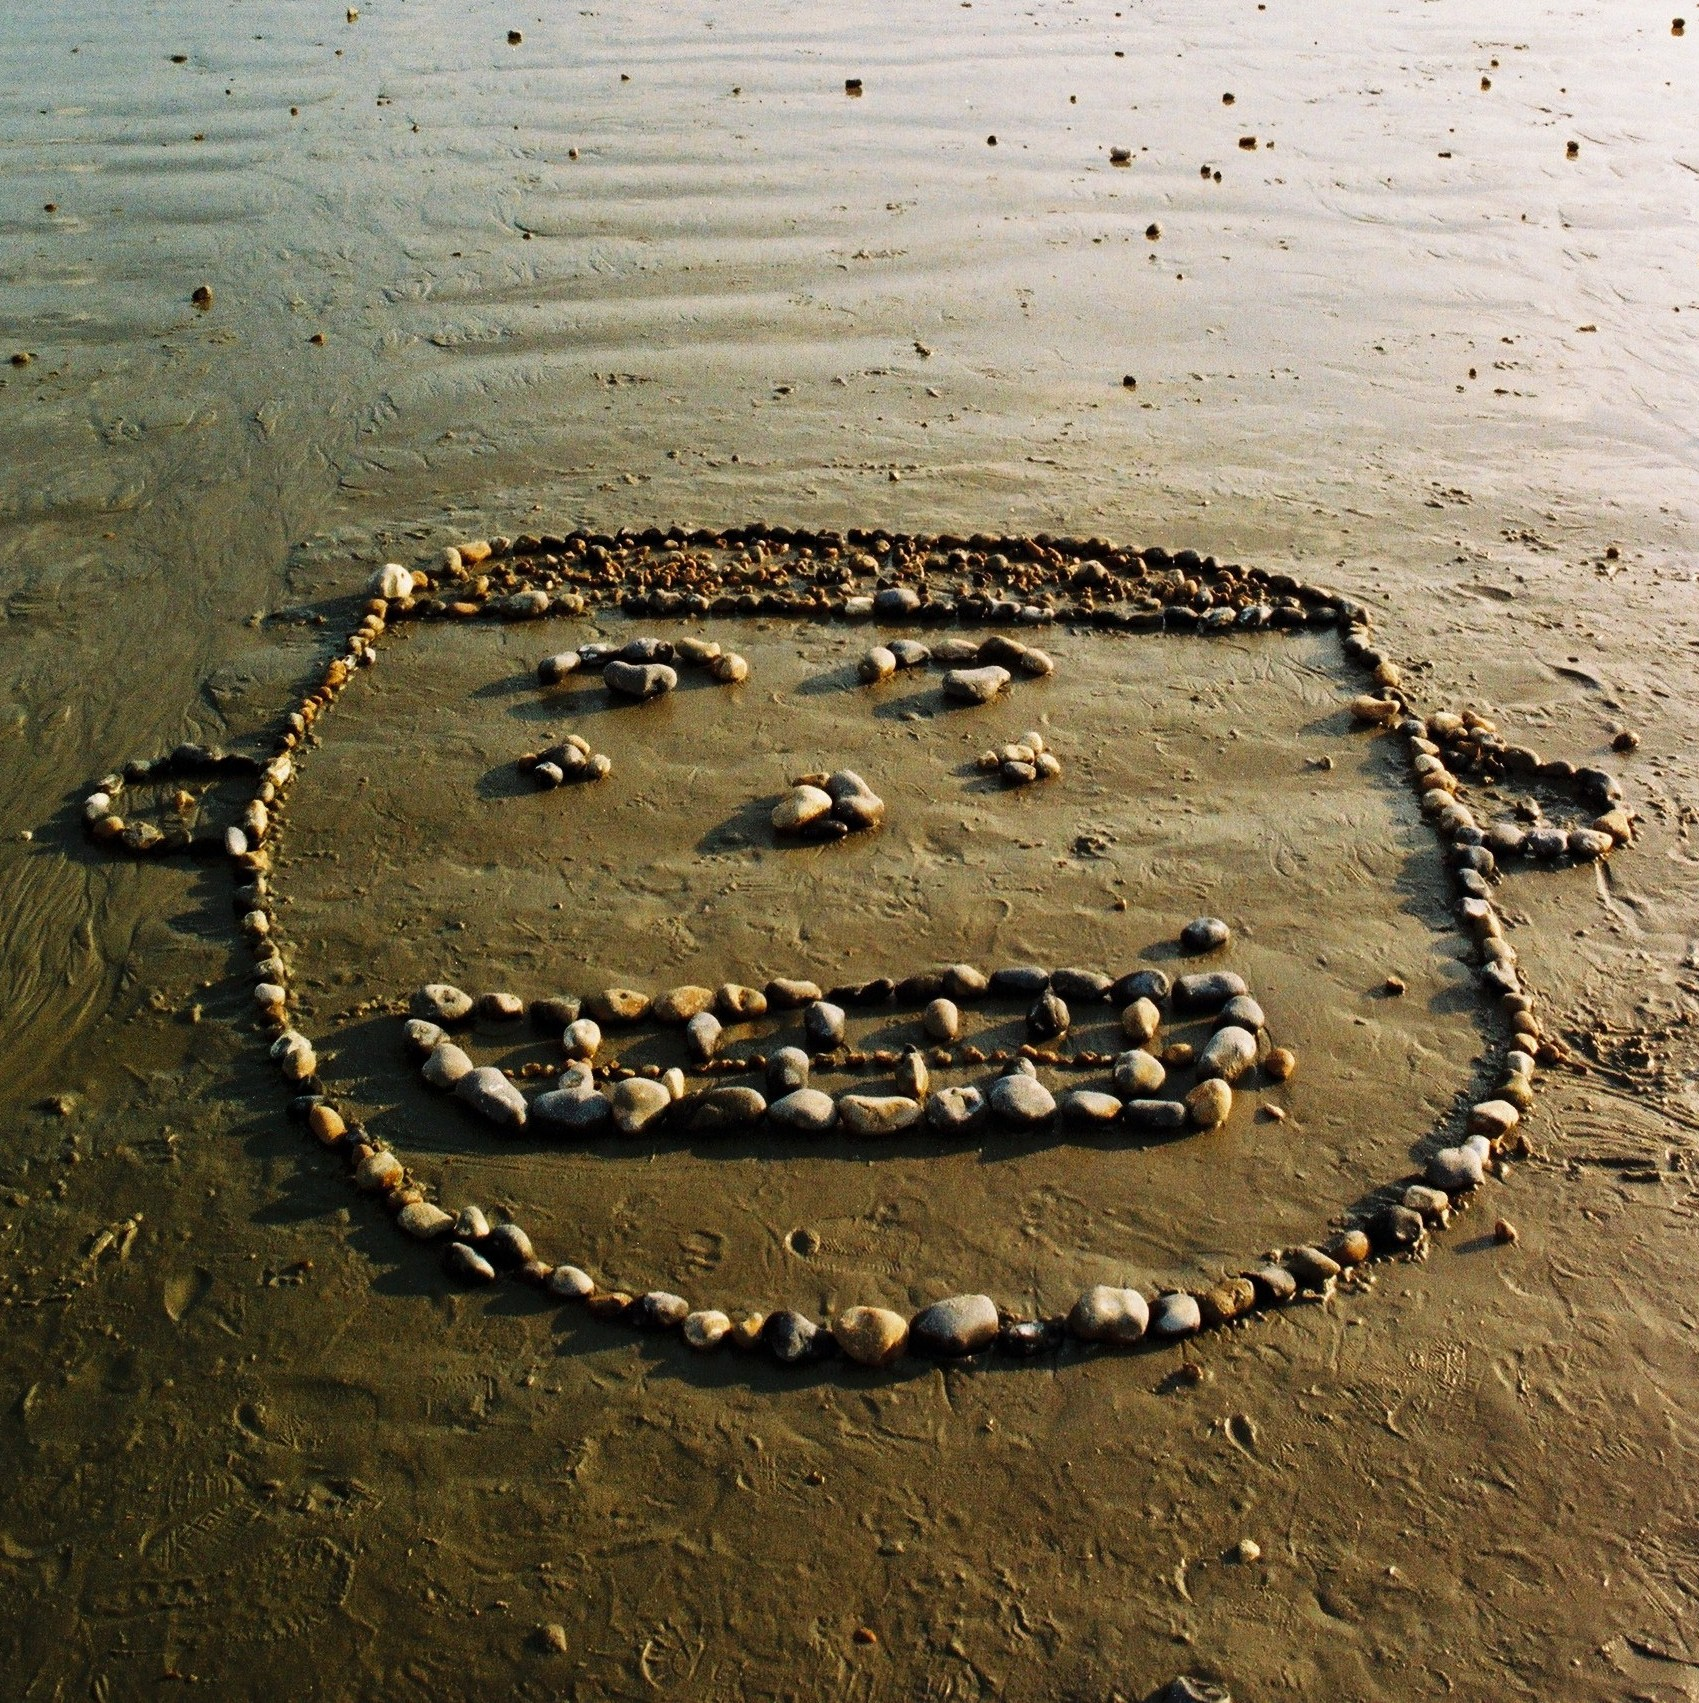 smiley face made of pebbles